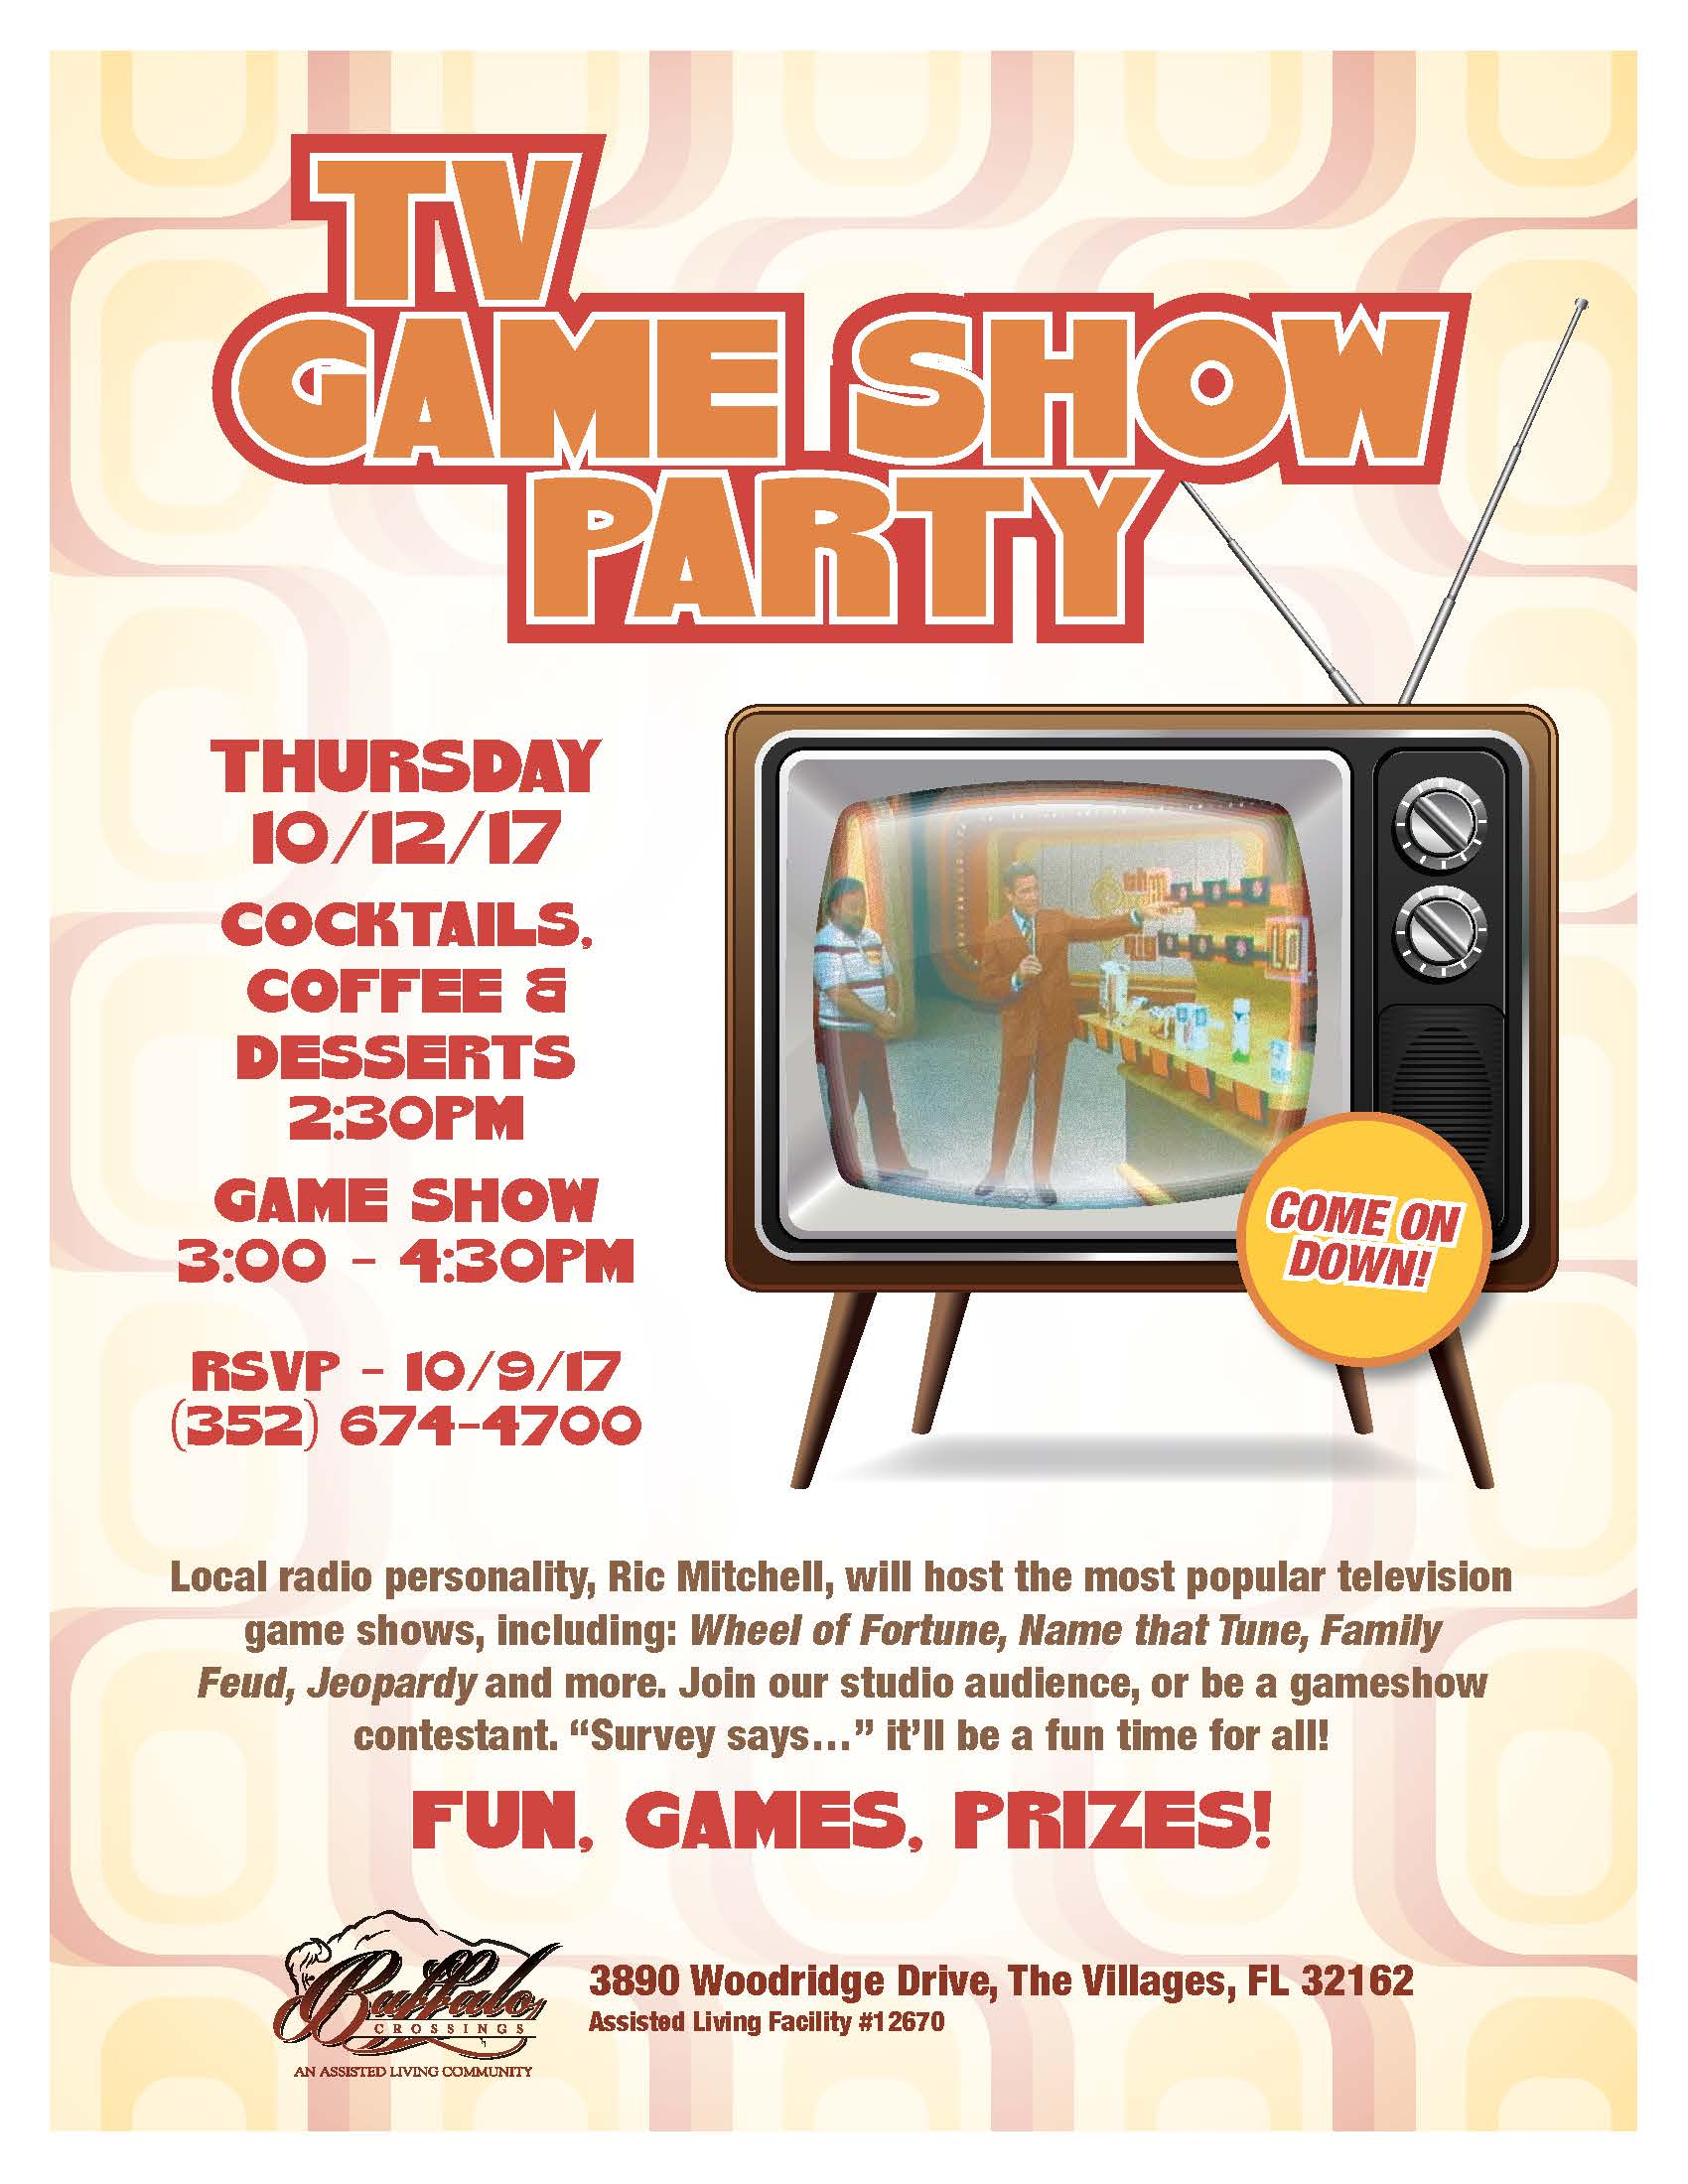 The Game Show Party - Buffalo Crossings Assisted Living